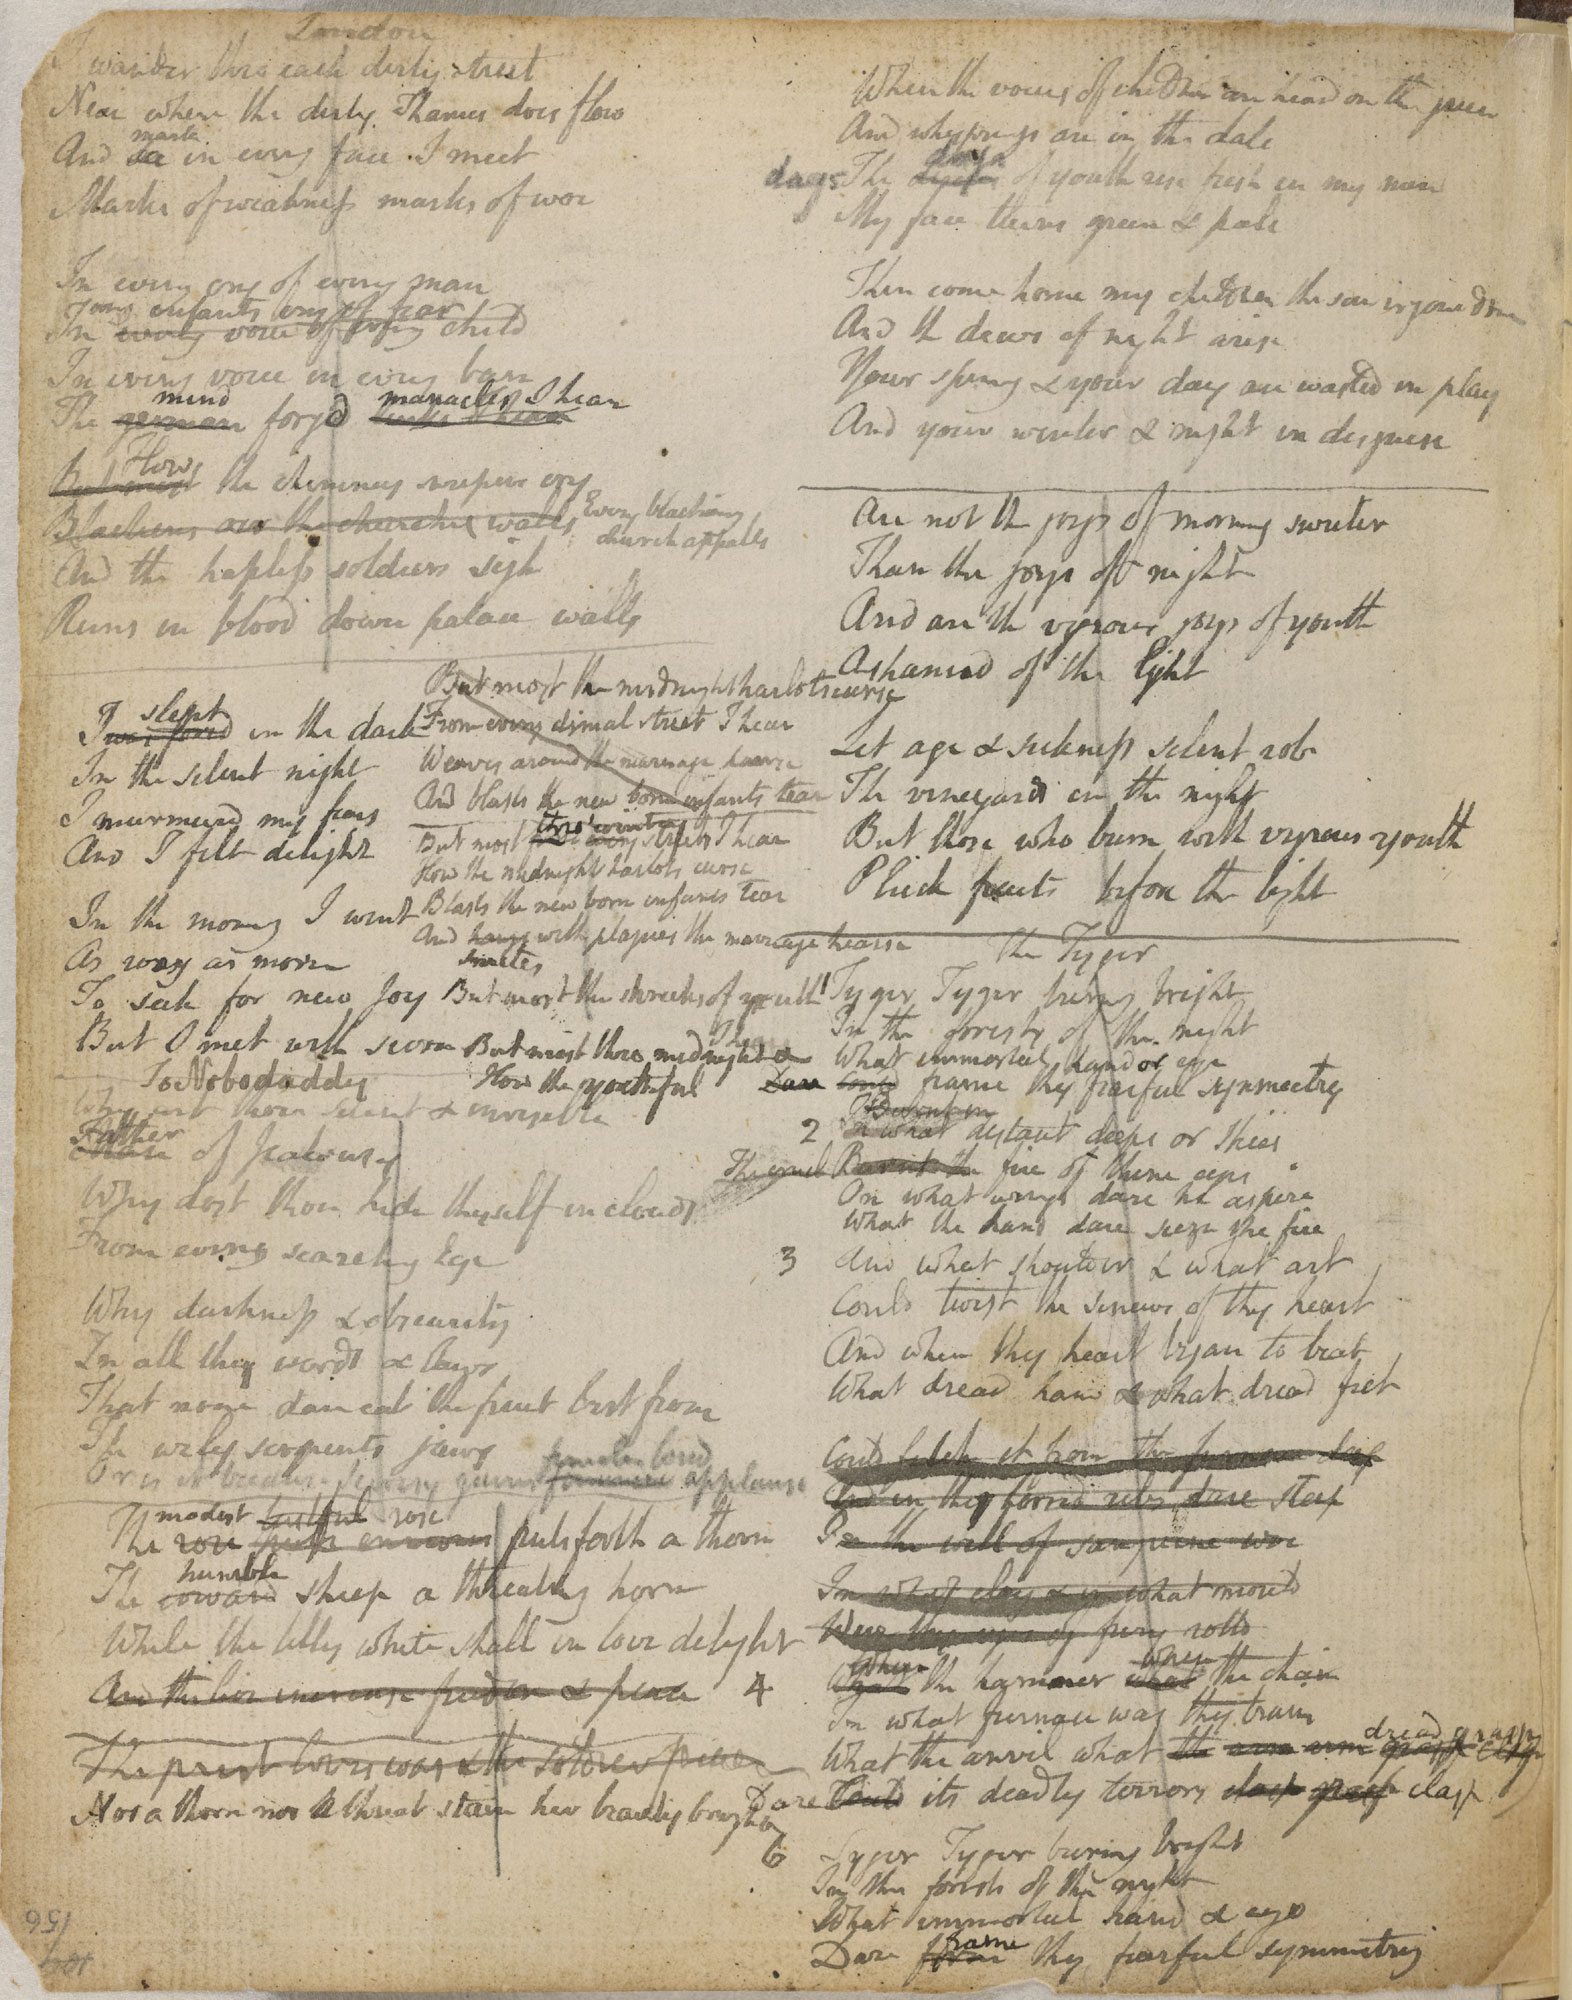 William Blake's Notebook